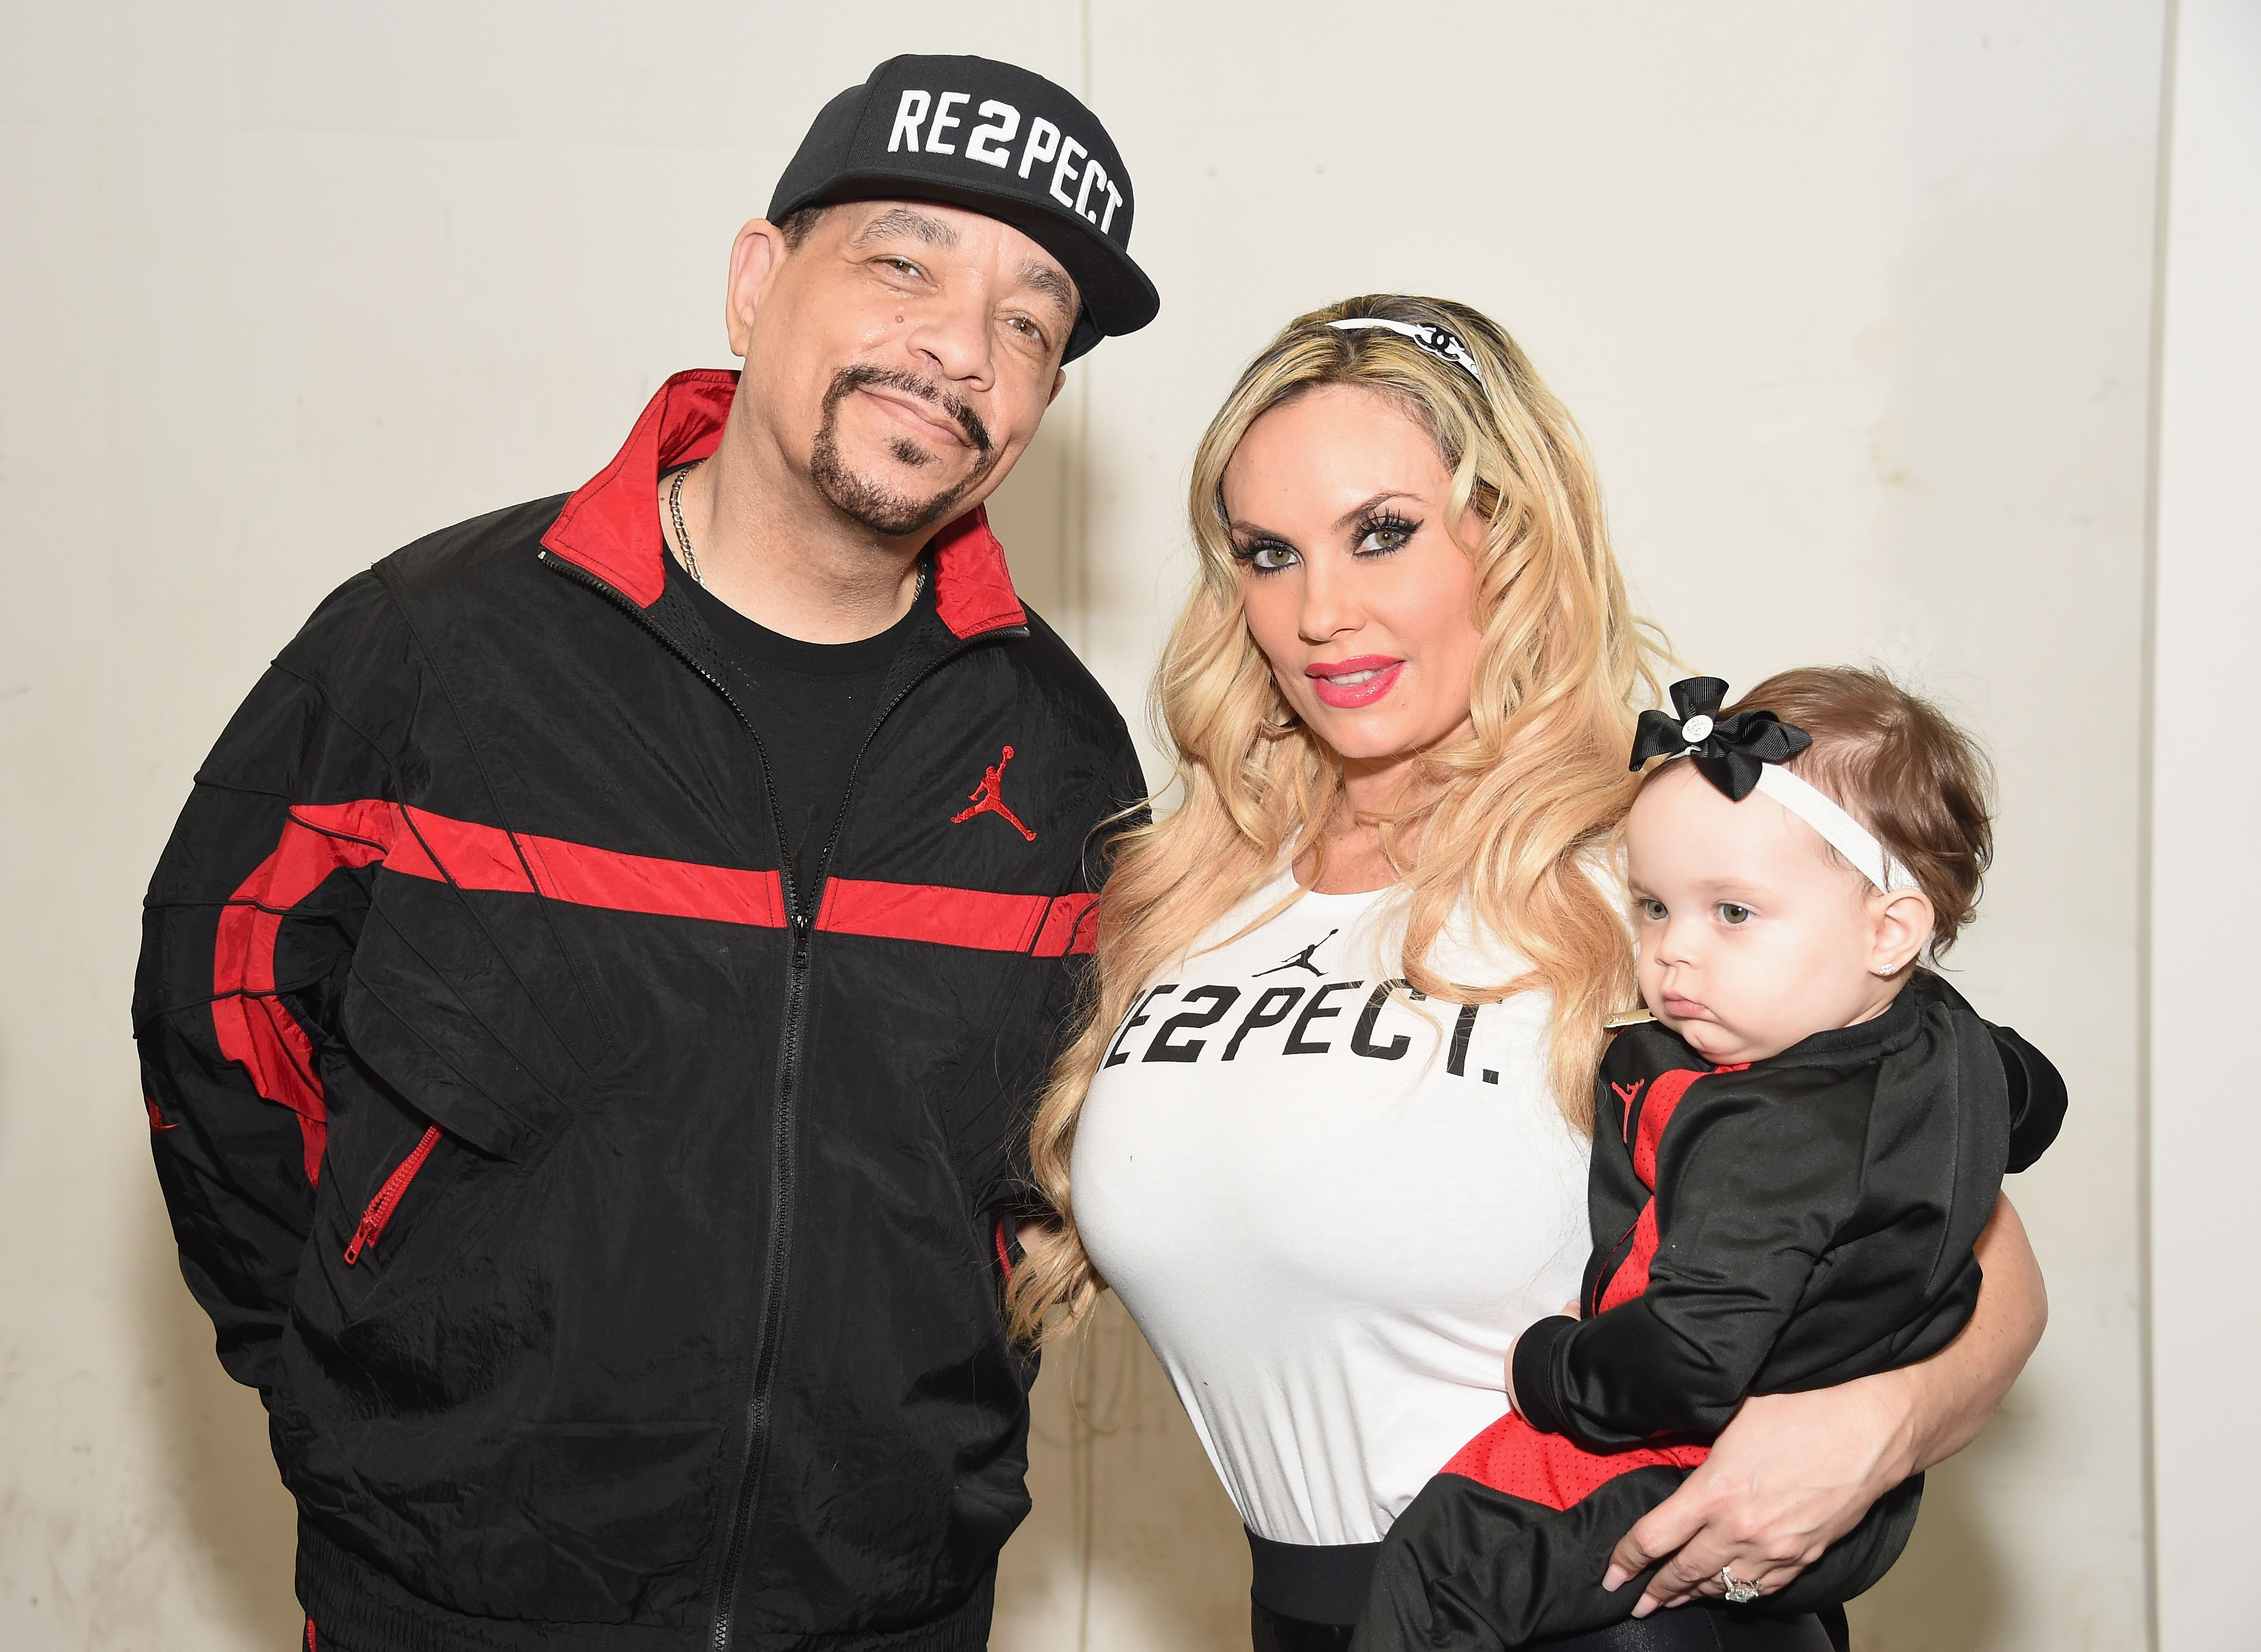 Coco Austin, Chanel and rapper Ice-T at the Rookie USA fashion show on February 15, 2017 in New York. | Photo: Getty Images